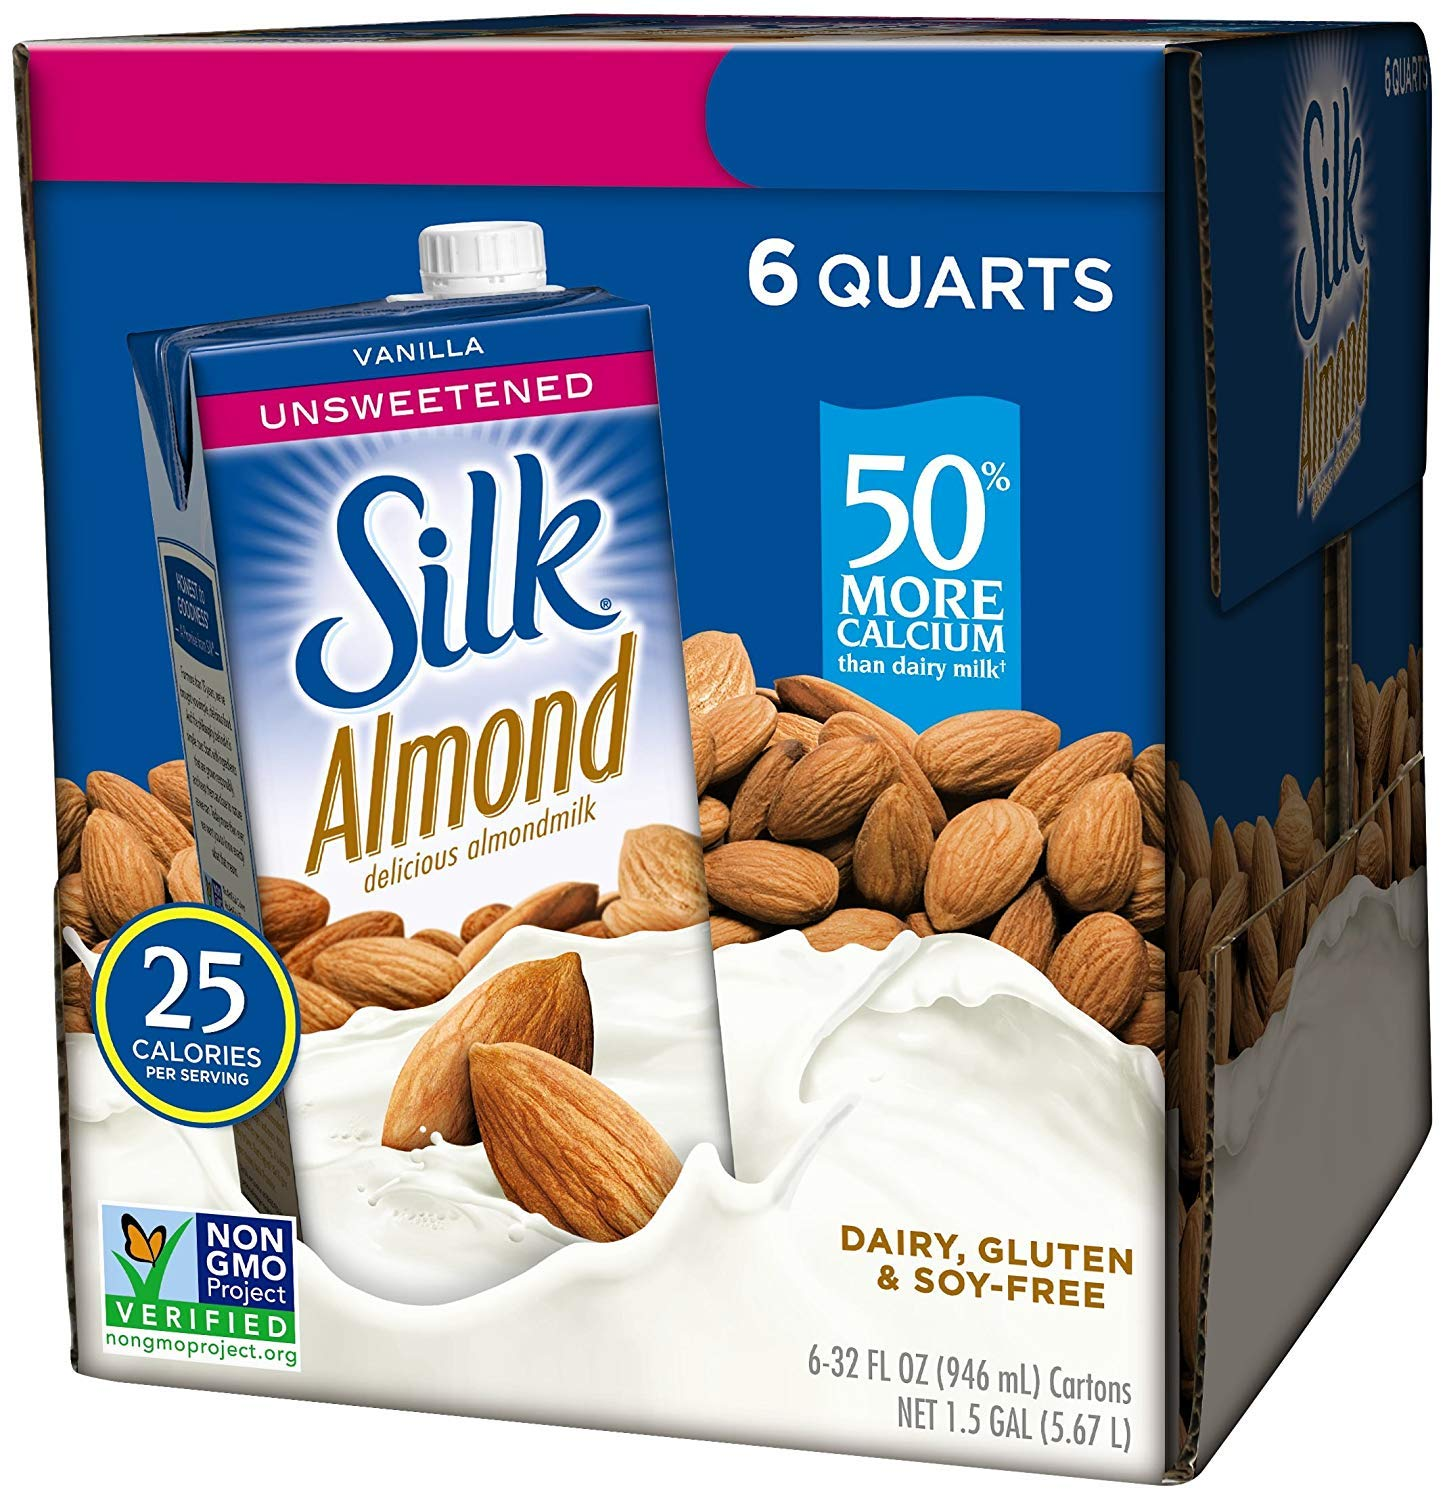 Silk Almond Milk, Unsweetened Vanilla, 32 Fluid Ounce (Pack of 6), Vanilla Flavored Non-Dairy Almond Milk, Dairy-Free Milk (2 Box (Pack of 6))